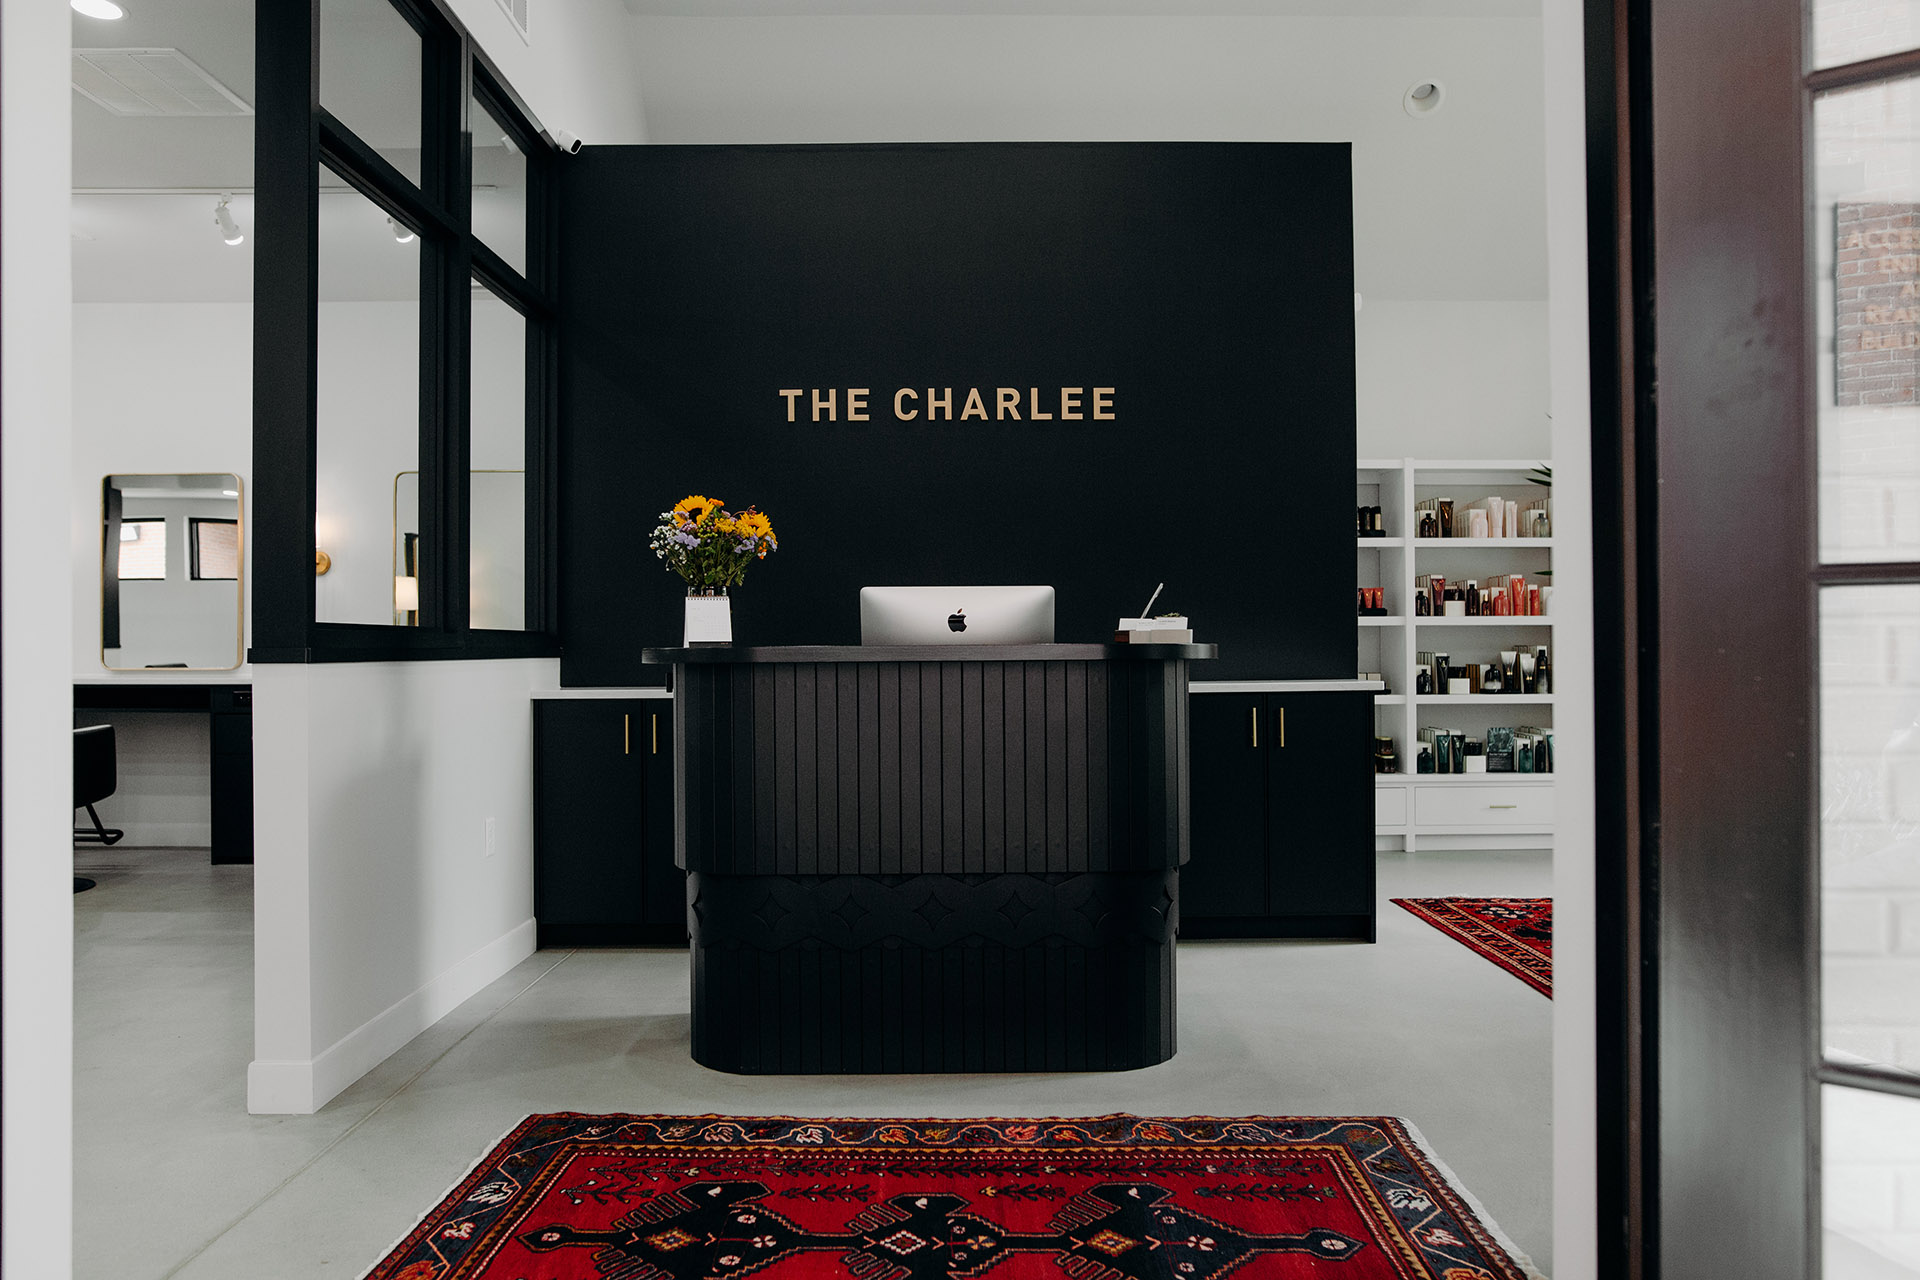 The Charlee salon's front desk